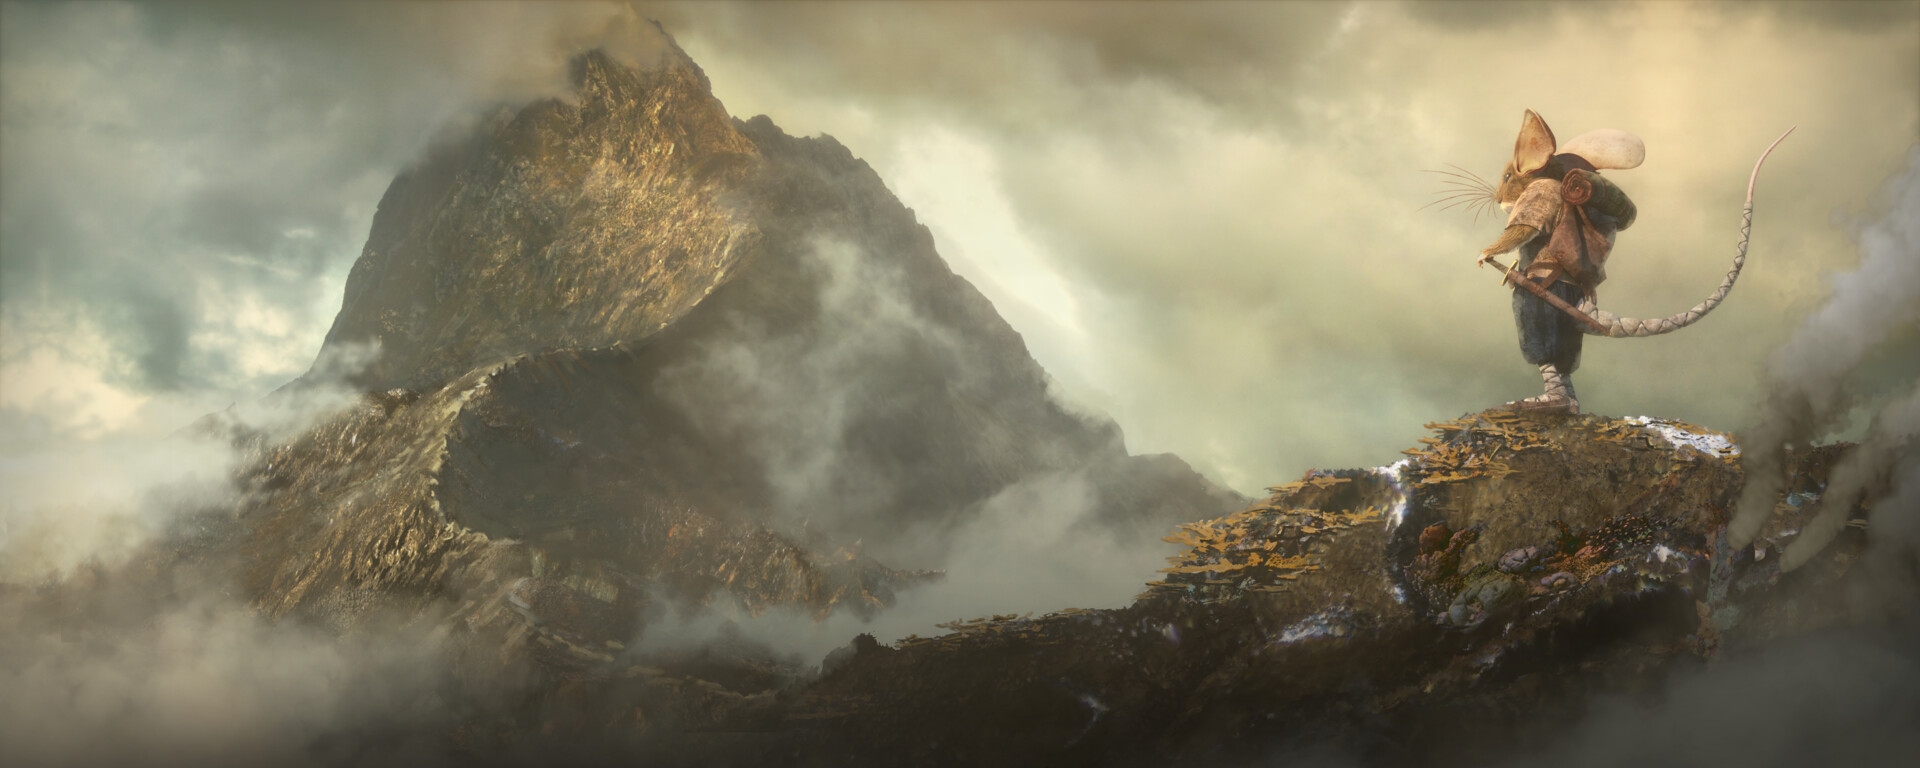 Jordi van hees mr whiskers explores the world part 1 toxic mountain base beauty render 004 small